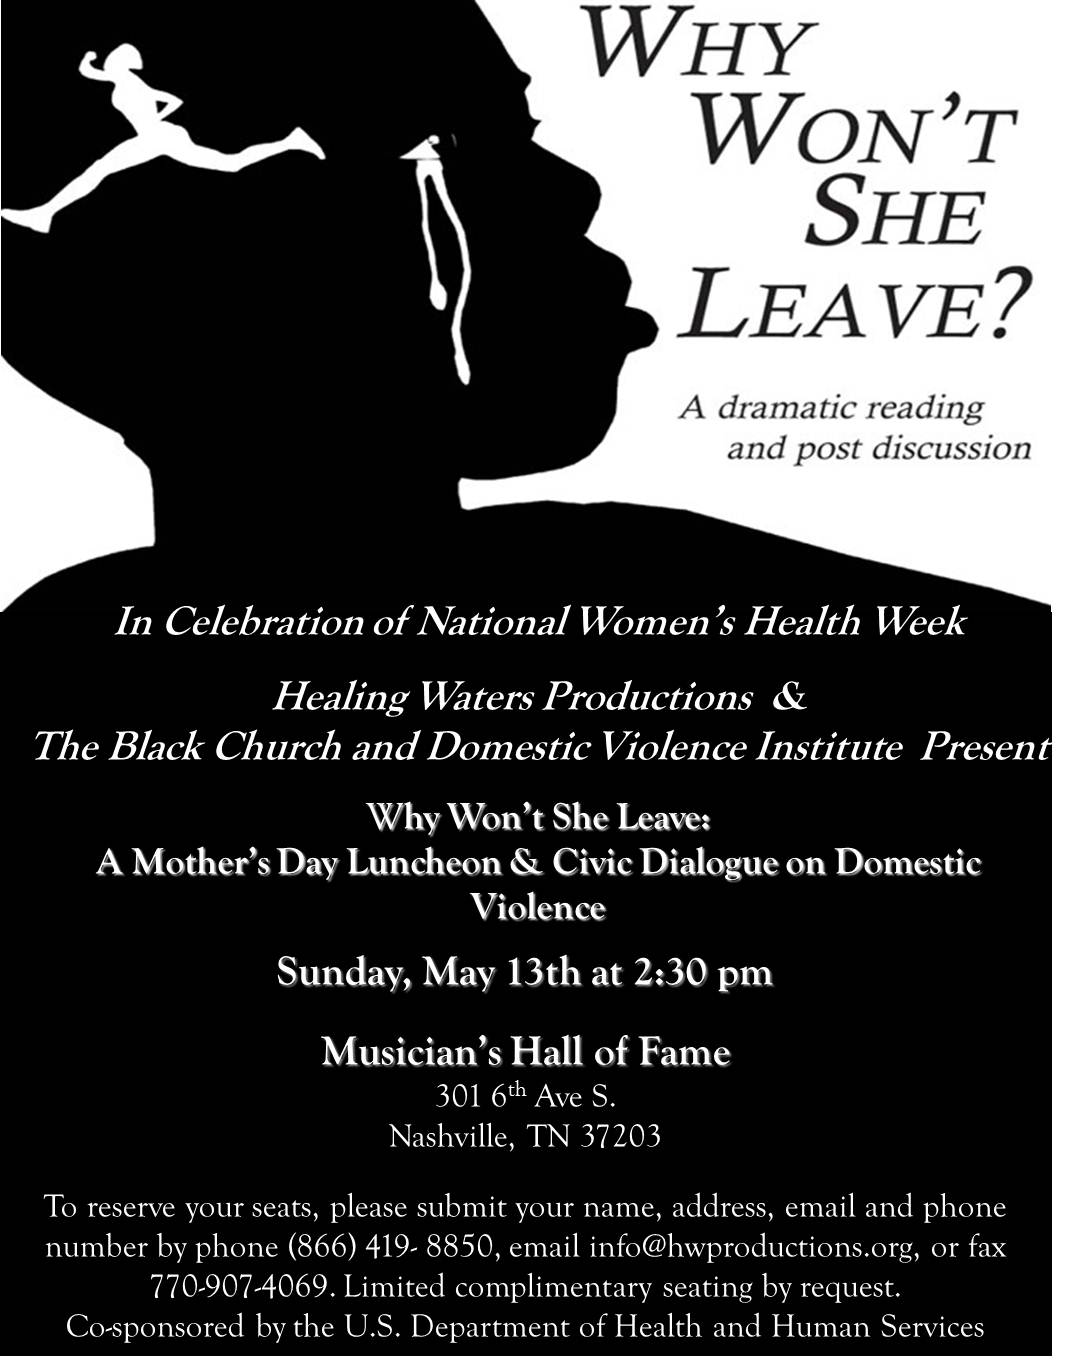 A Mother's Day Lunch & Civic Dialogue on Domestic Violence ...